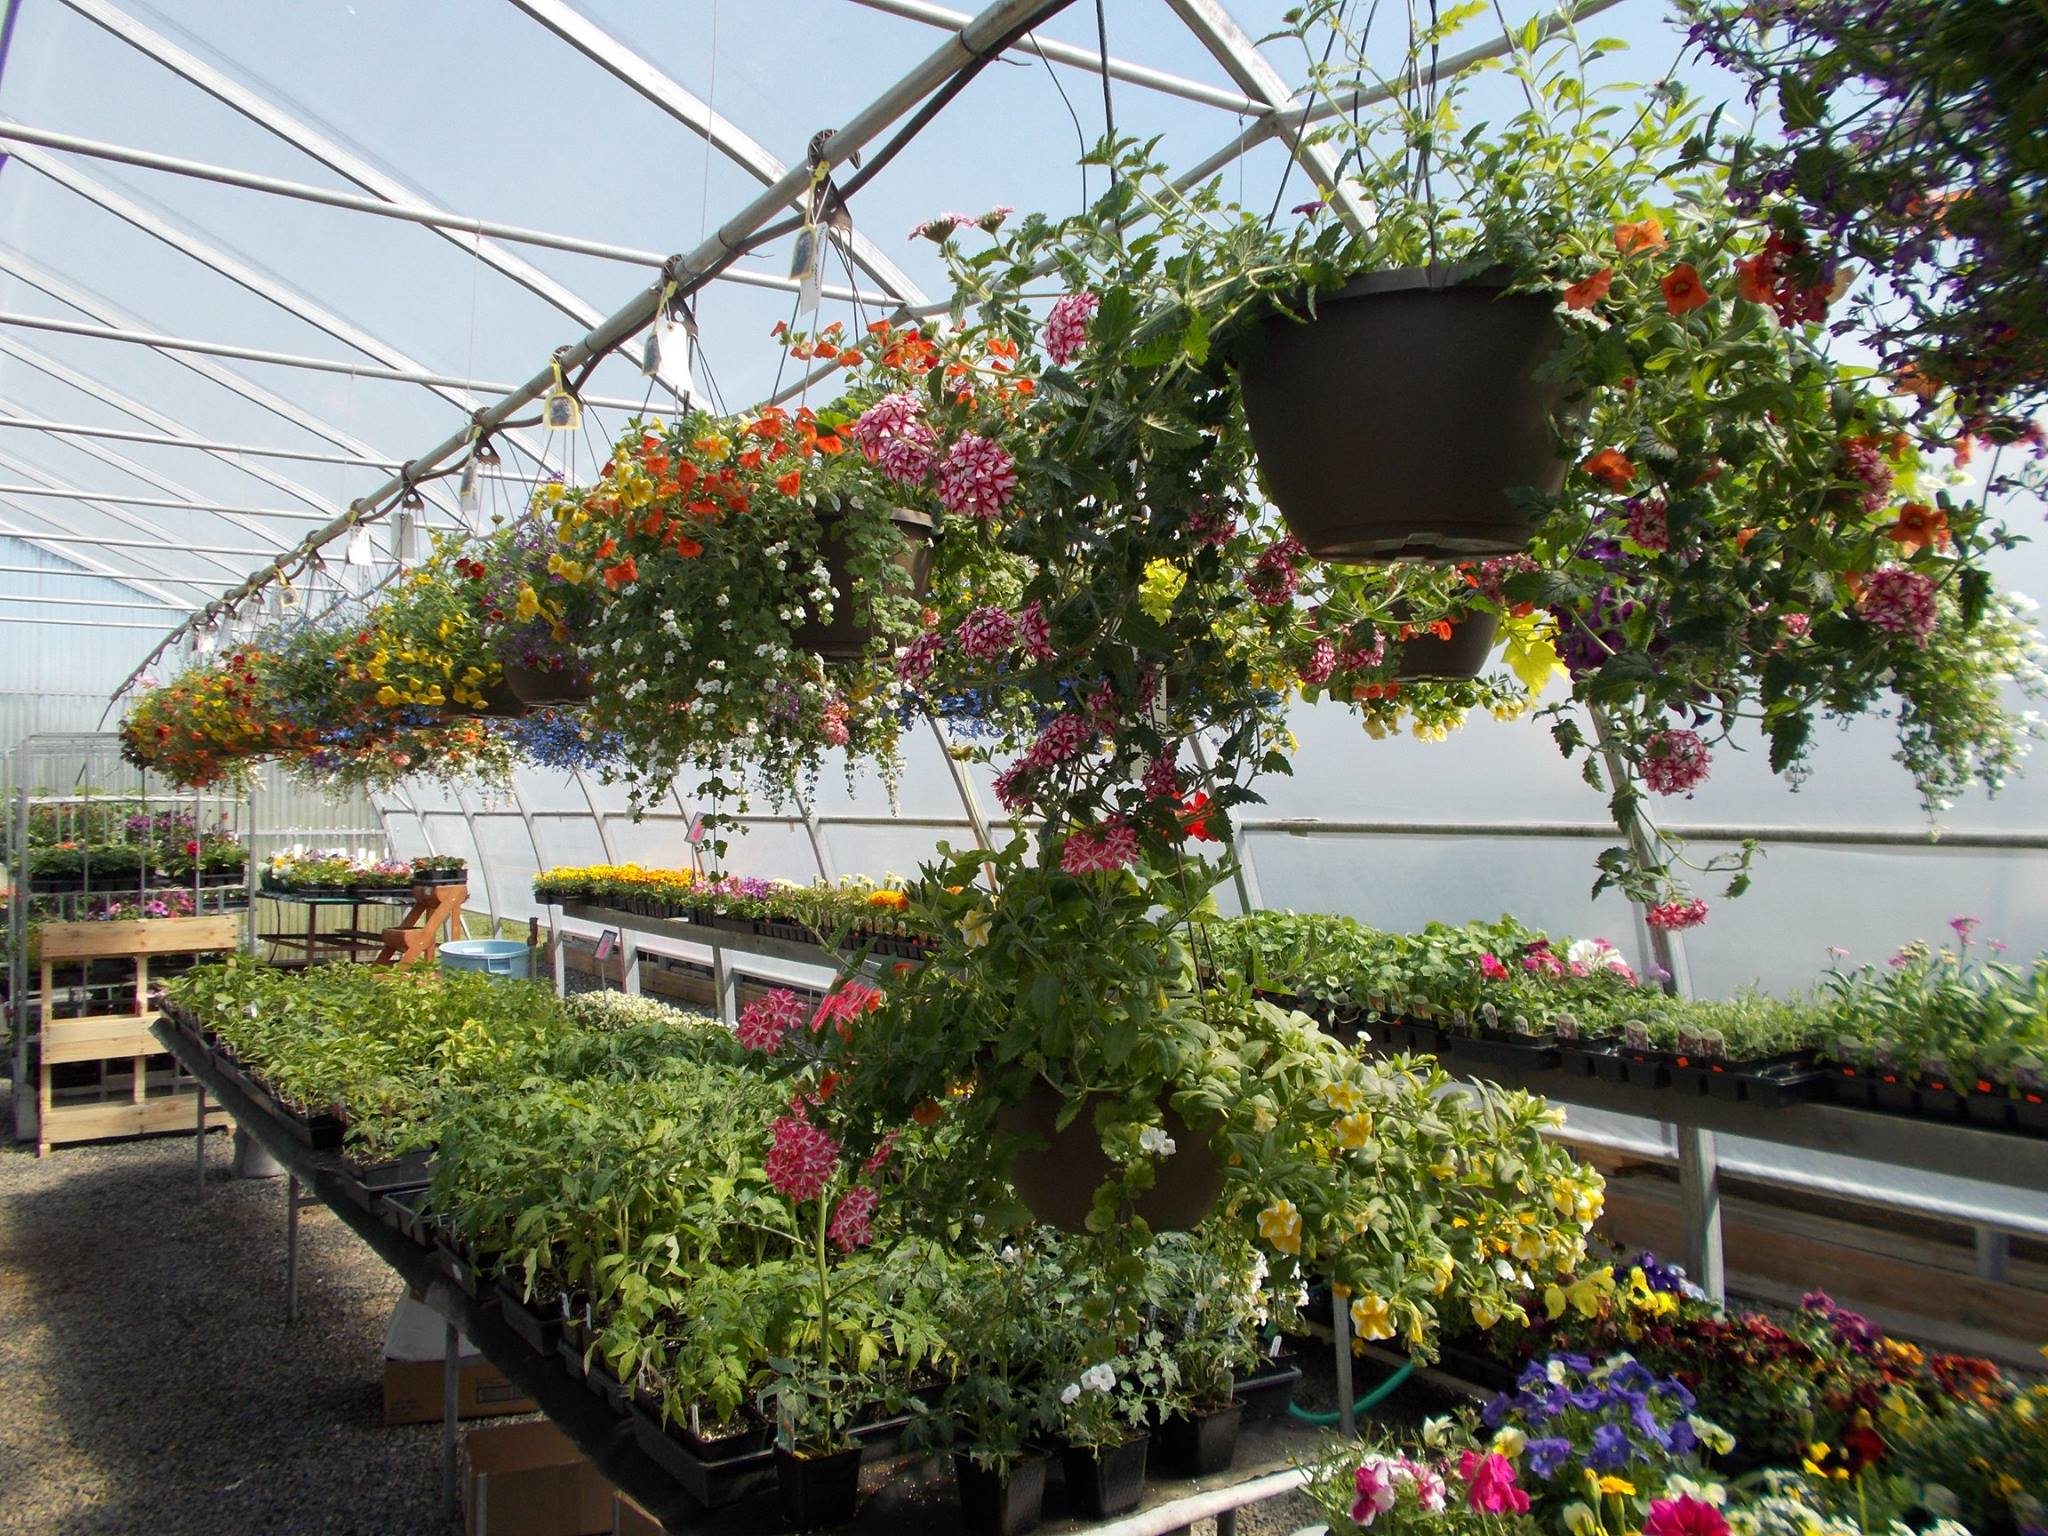 We offer a wide variety of products to help you with all your gardening needs! Whether it be vegetable seeds, potting soils, fertilizers, fungicides, or insecticides, we carry everything you need for a healthy, prosperous garden!